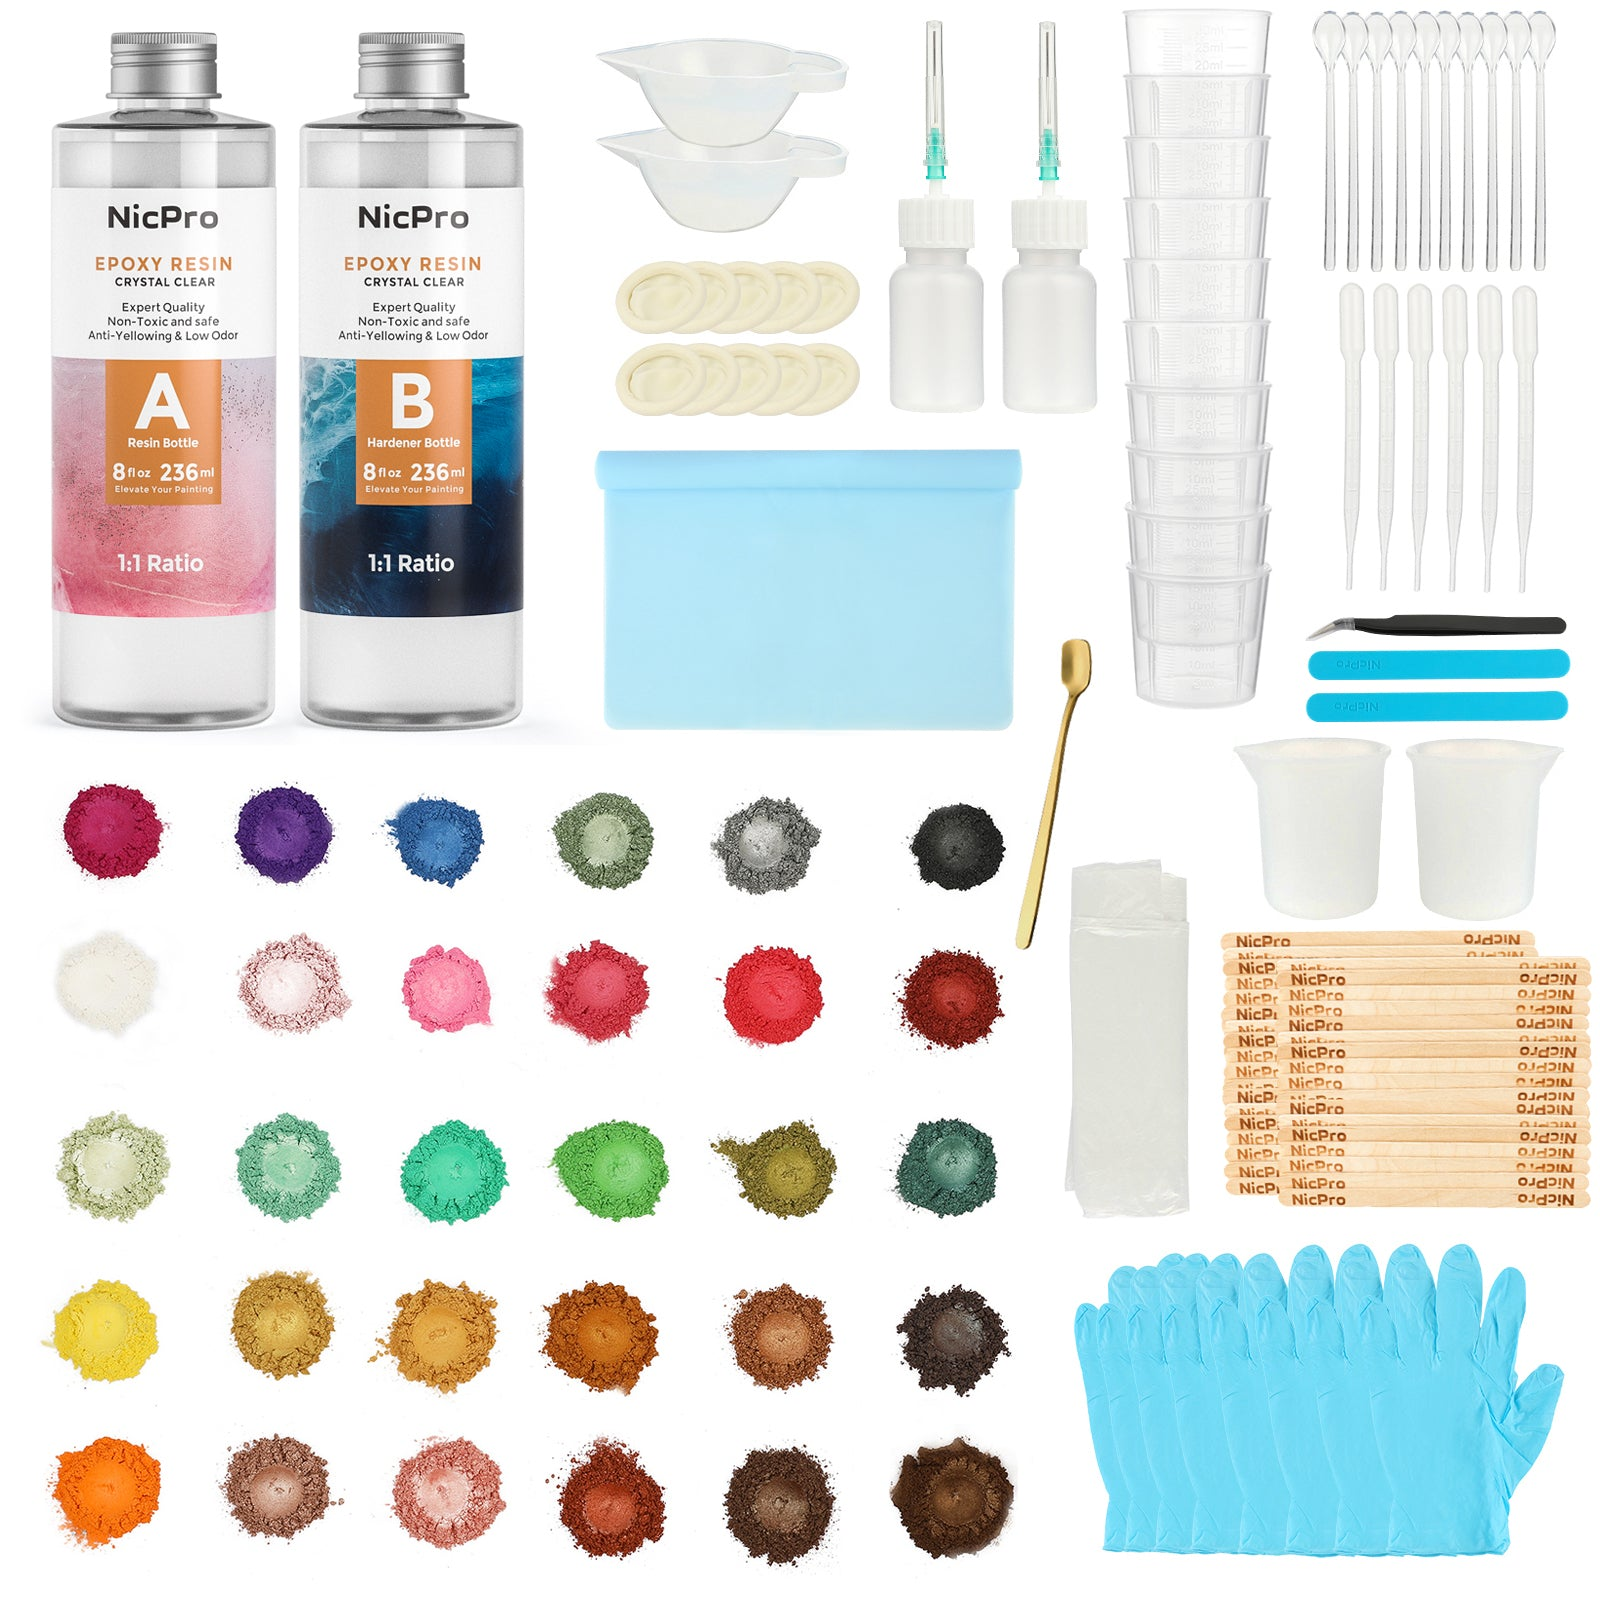 Clear Epoxy Resin Starter Kit 115 Pack, 16 Ounce Resin with 36 Colors Mica Powders Pigment, Measuring Cups, Silicone & Wood Stick Beginner Tools for Craft, Jewelry Making, Molds, Cast Pouring